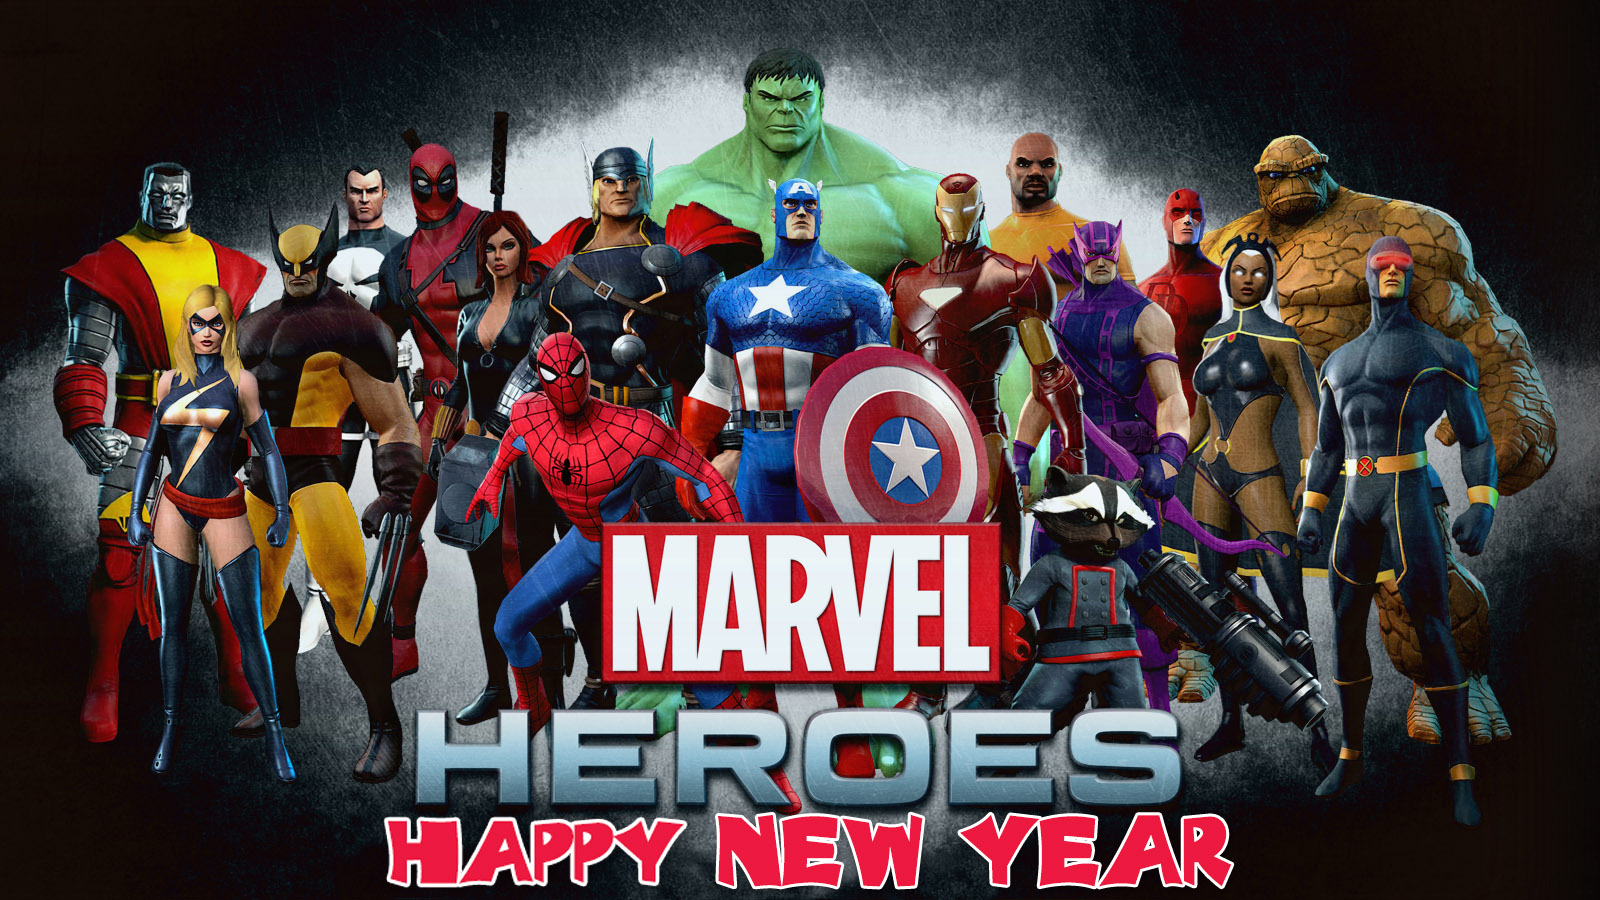 happy new year greetings marvel avengers team super heroes hd wallpaper